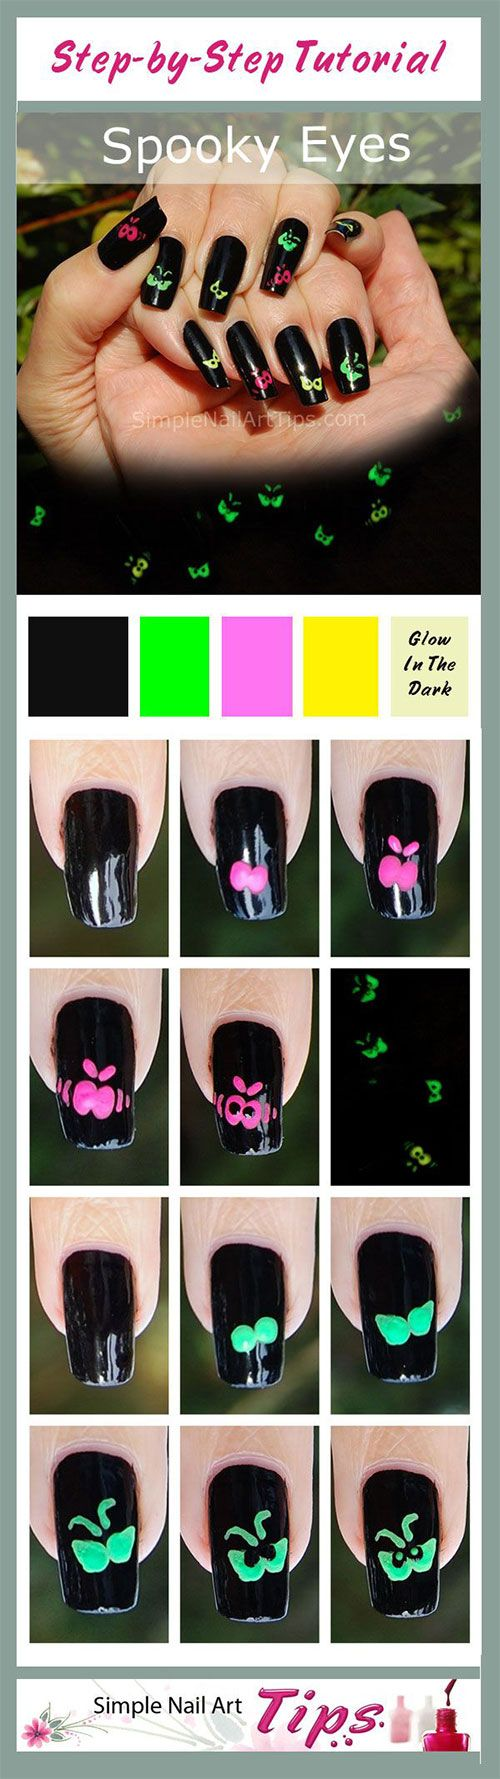 Simple easy scary halloween nail art tutorials 2013 for beginners simple easy scary halloween nail art tutorials 2013 for beginners learners 2 simple easy prinsesfo Gallery